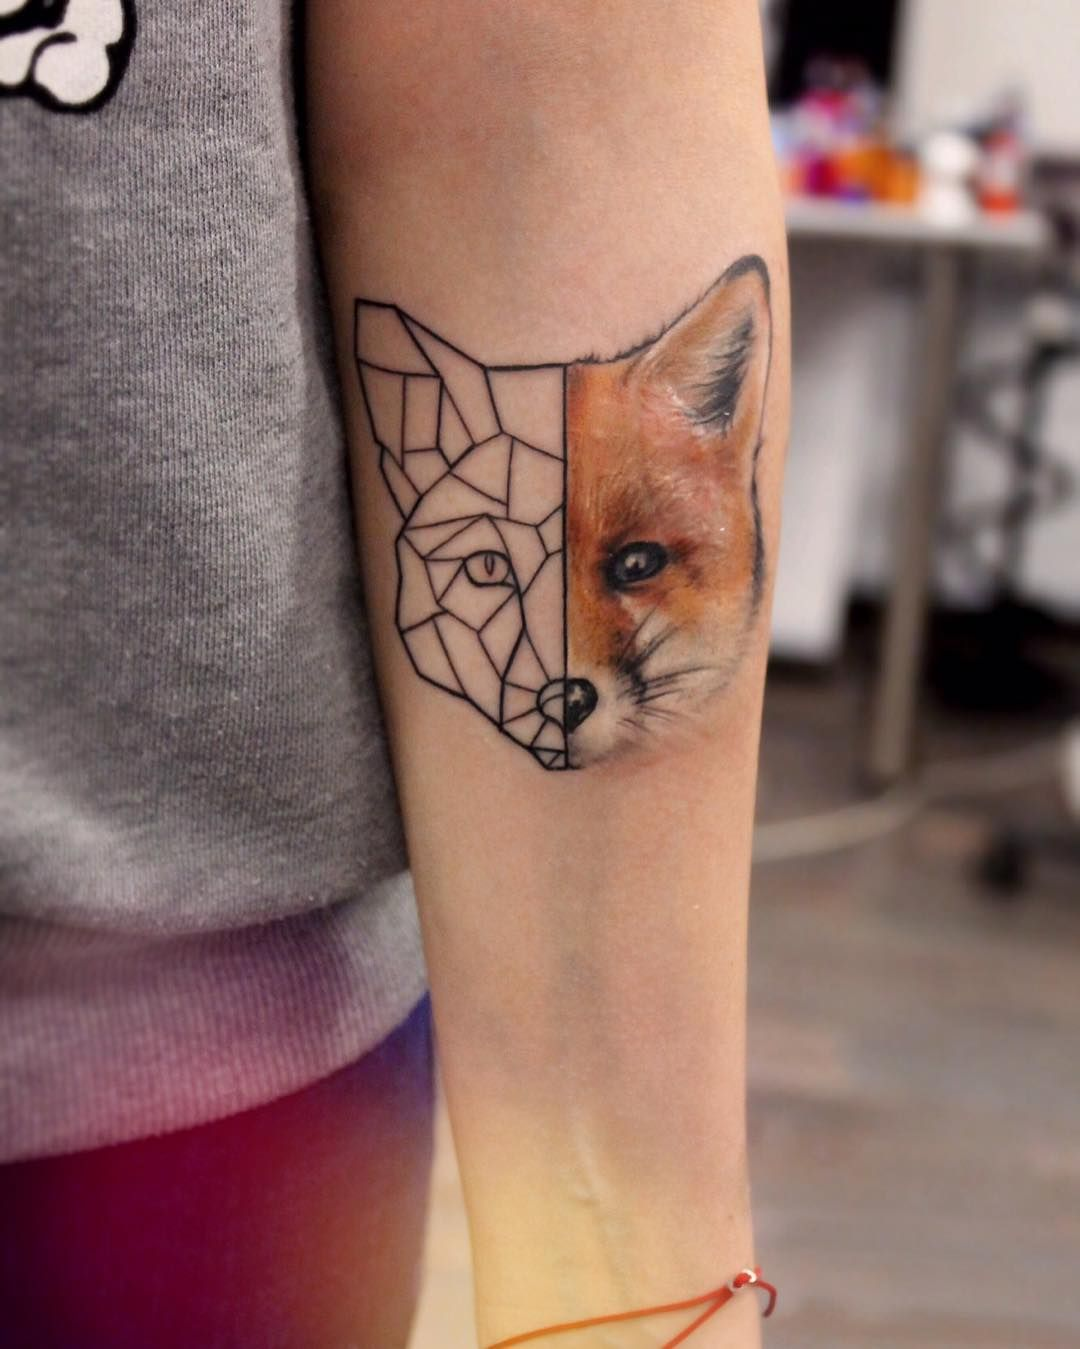 23 Geometric Tattoos Ideas Geometric Tattoo Arm Tattoo Fox Tattoo